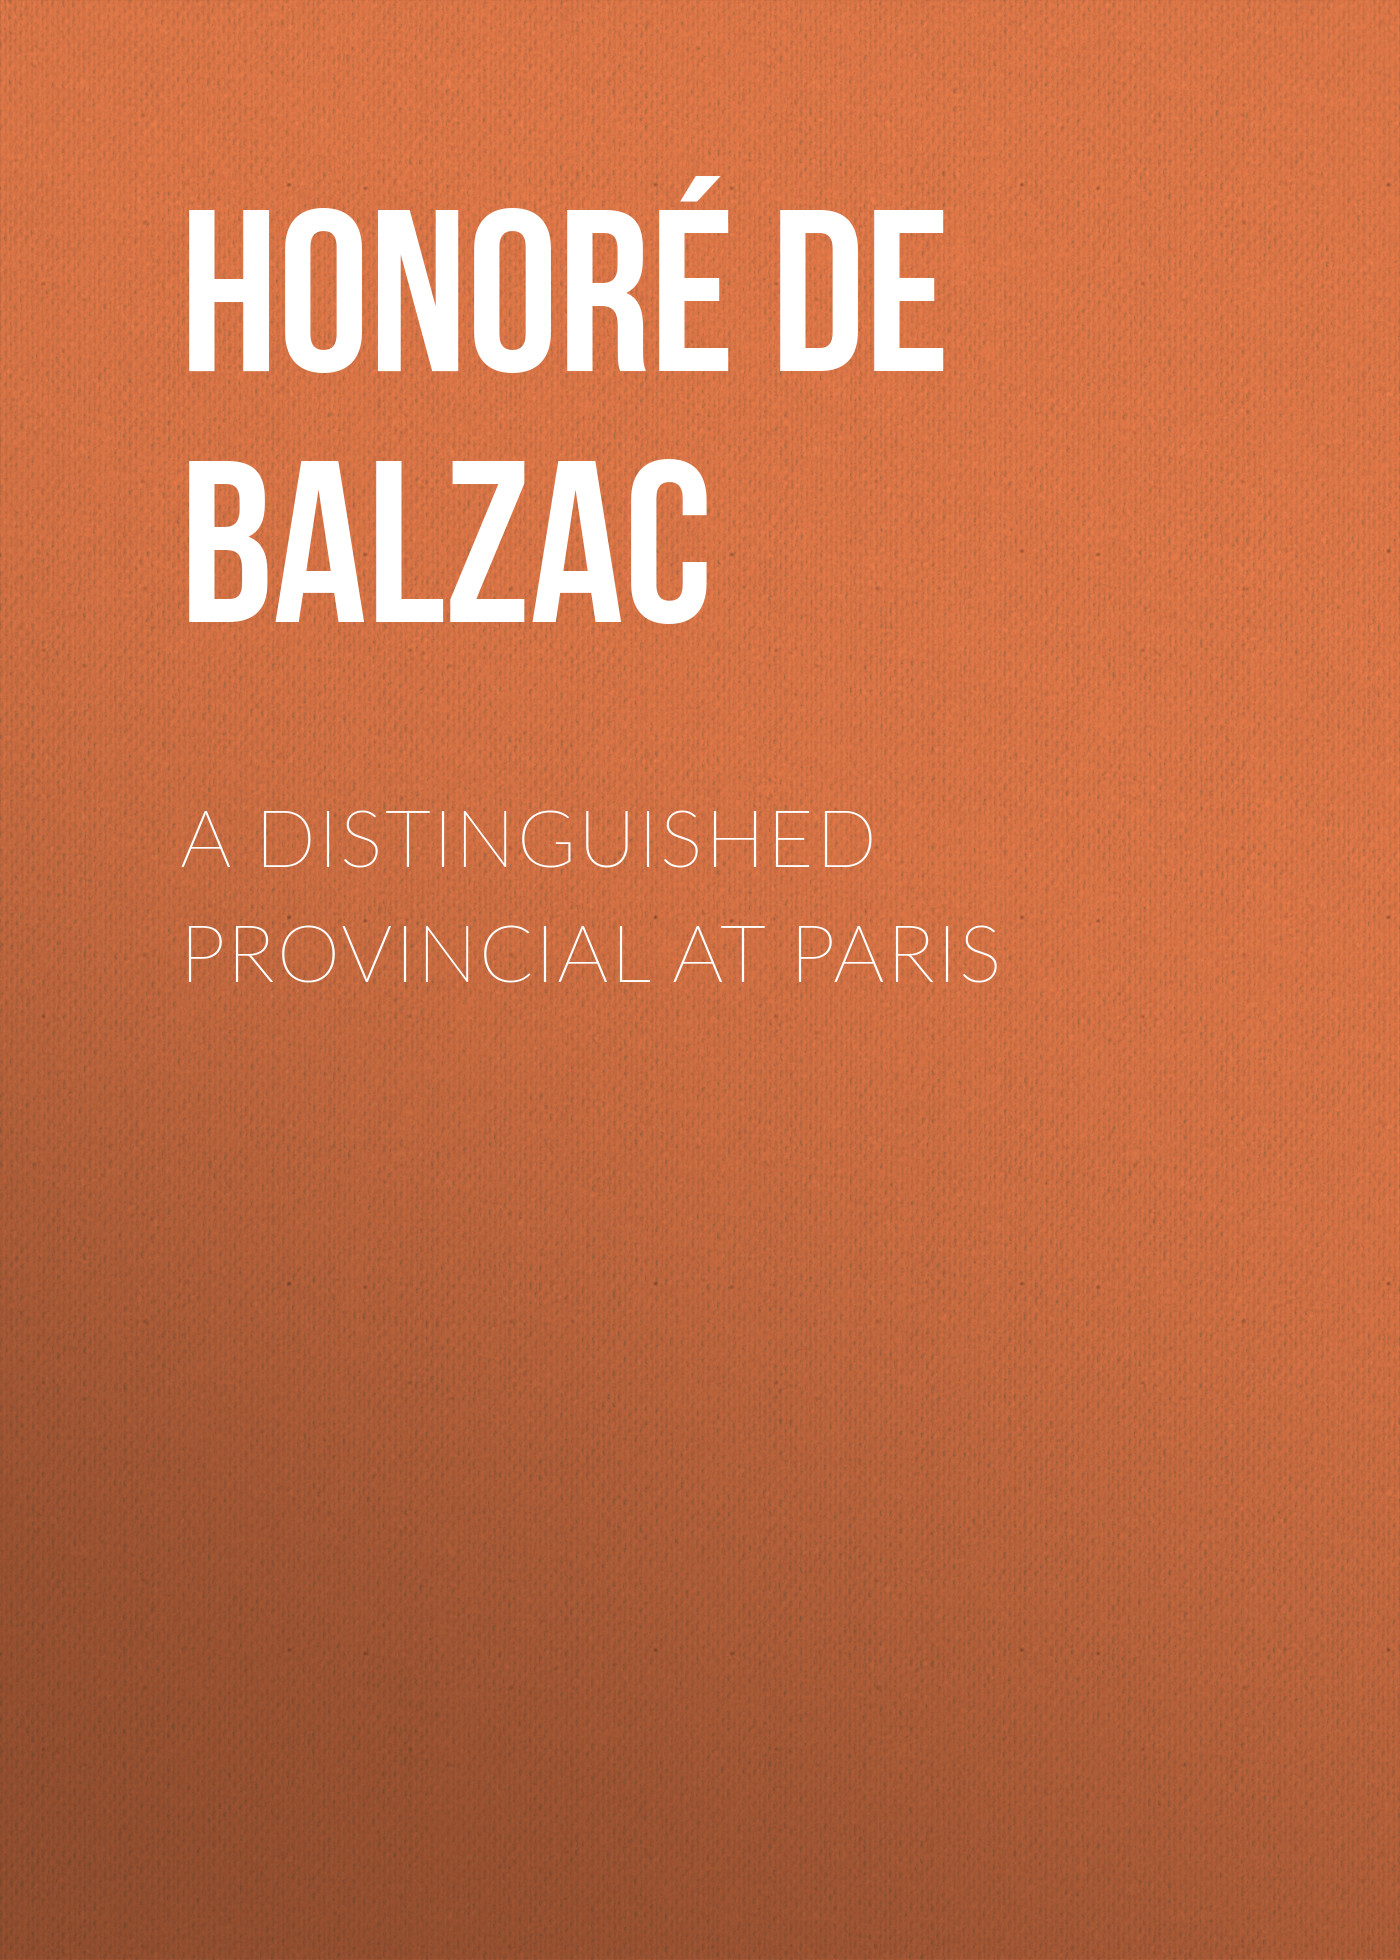 A Distinguished Provincial at Paris